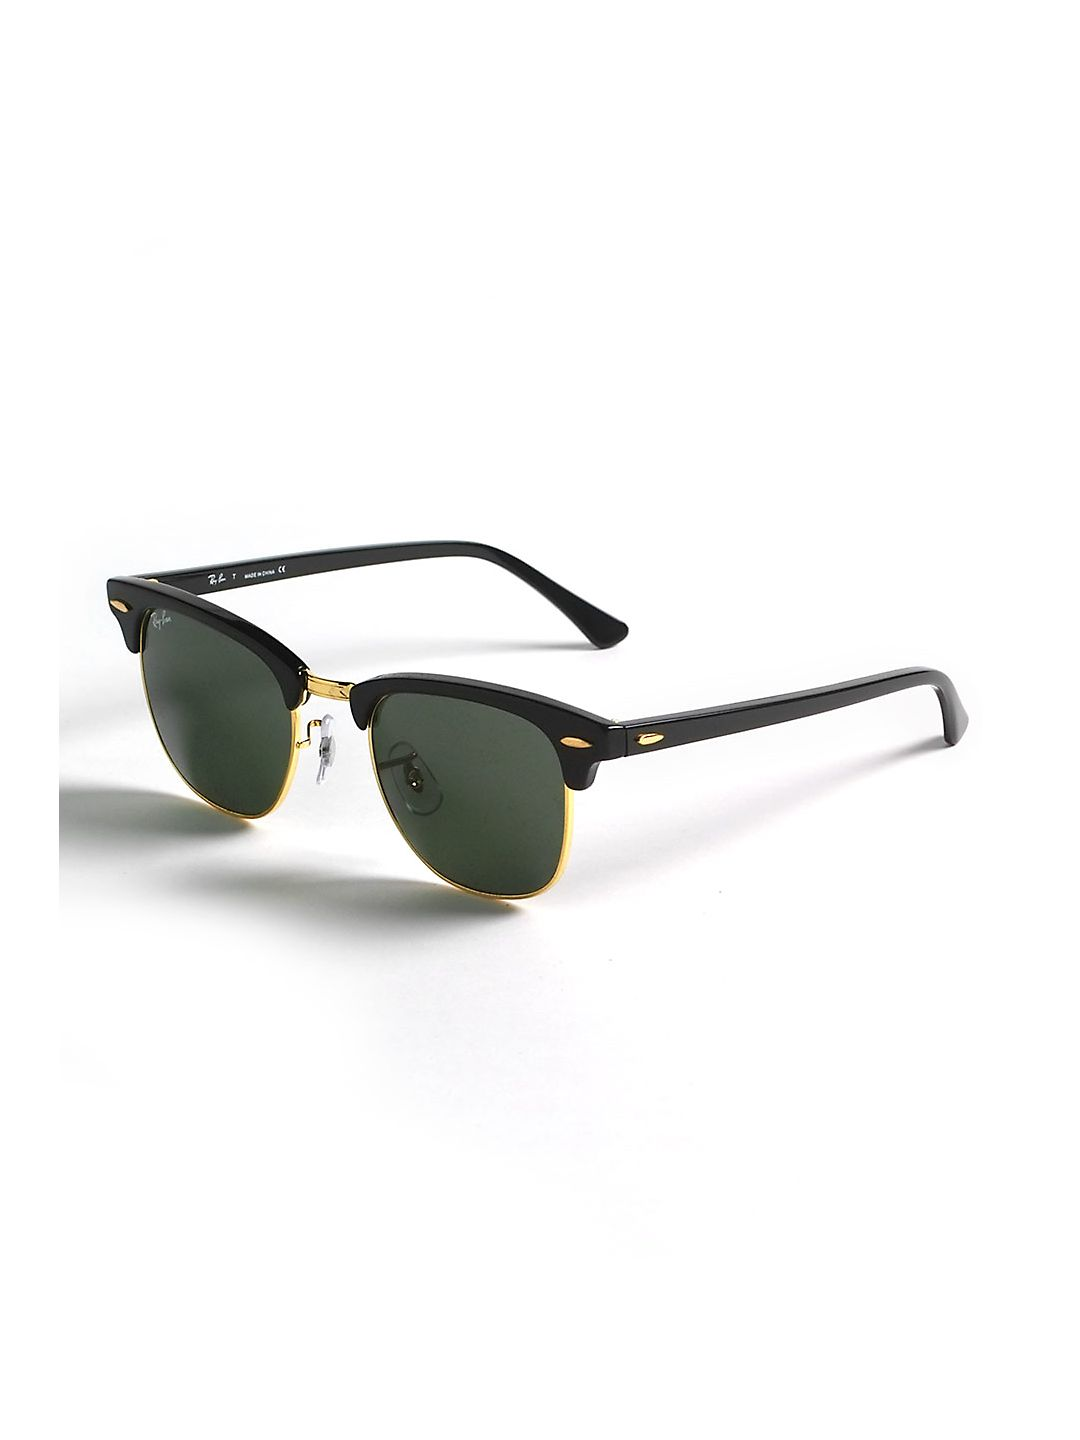 fa3562a978b ... clearance ray ban ray ban unisex rb3016 classic clubmaster sunglasses  49mm walmart ded99 7b379